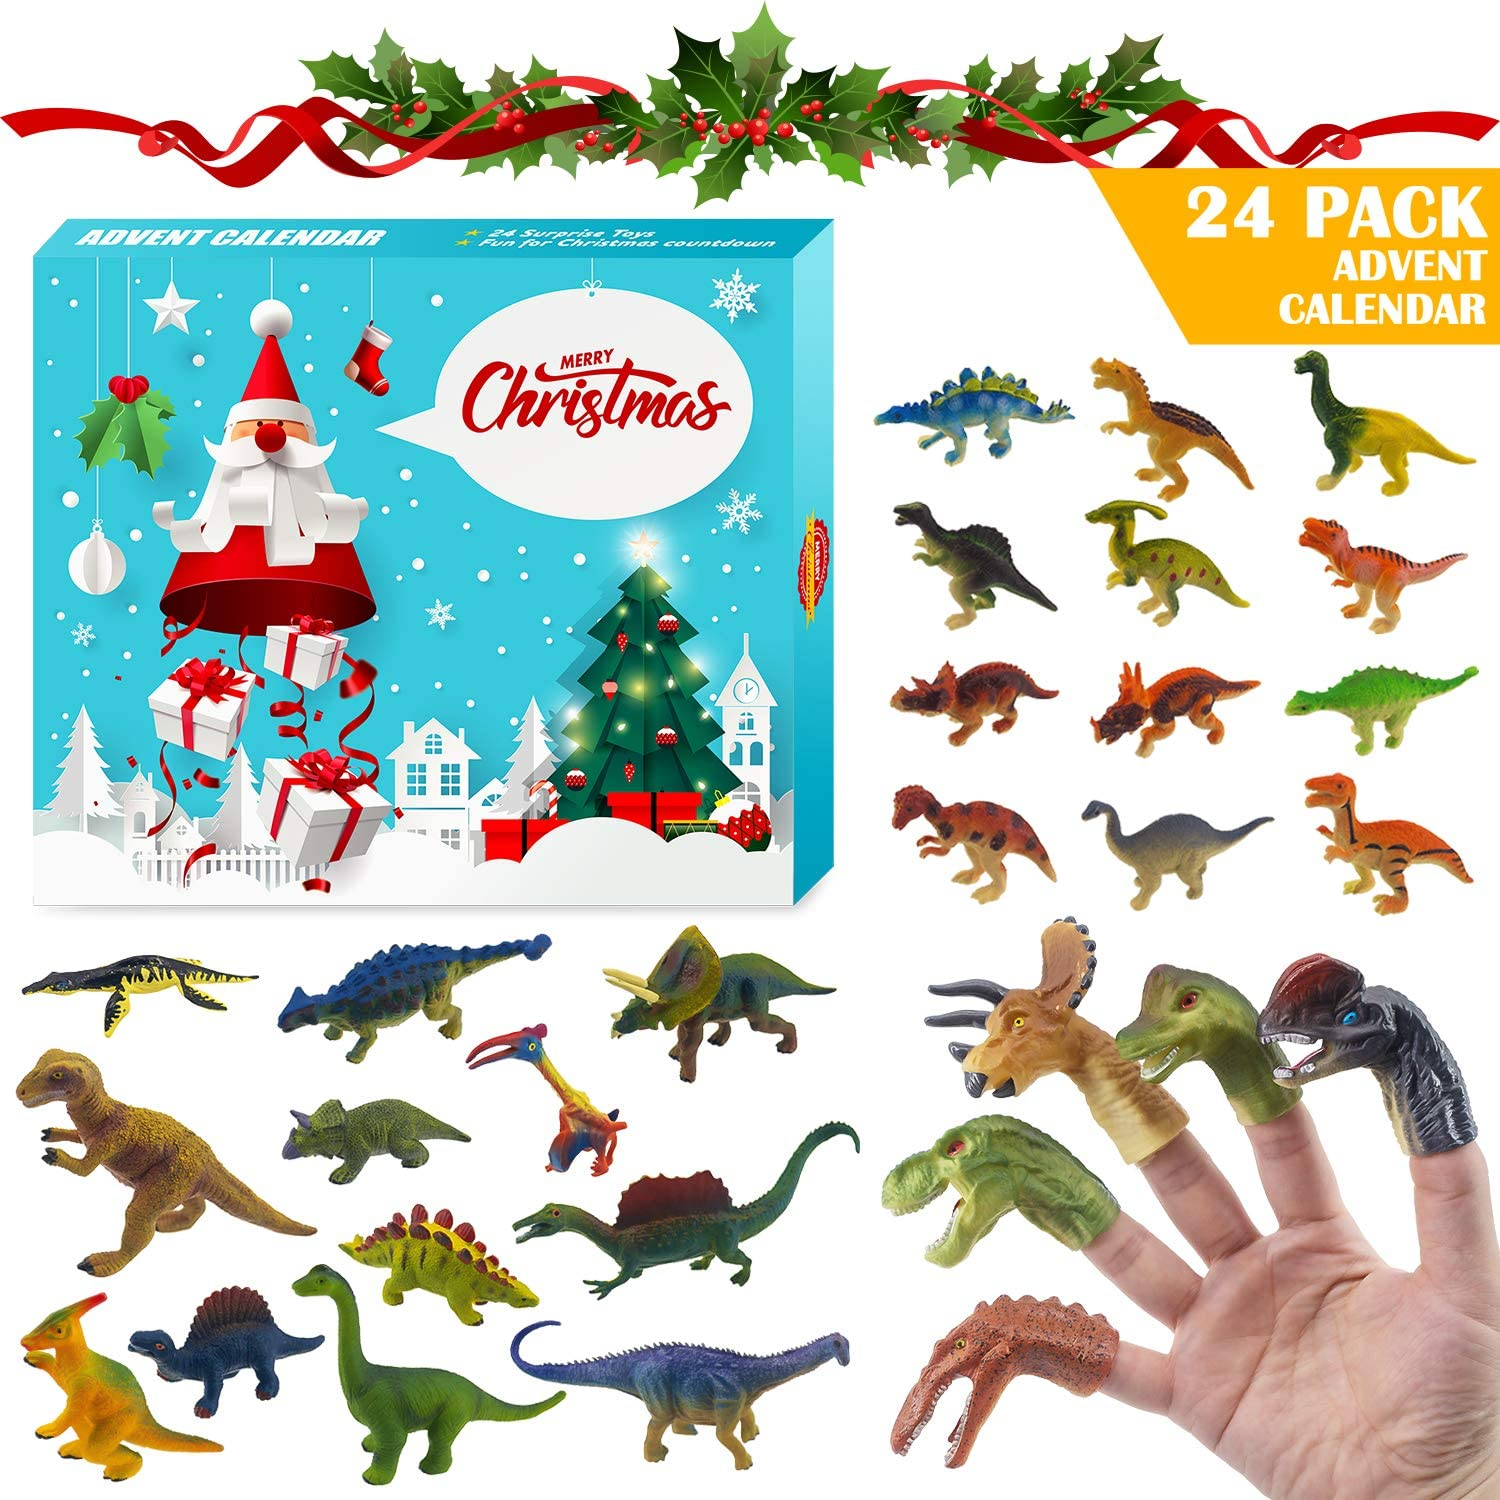 Dinosaur Figures Finger Puppet Christmas Countdown Advent Calendar, T-rex, Velociraptor, Triceratops, Spinosaurus, Pterodactyl Figures for Count Down Xmas Holiday Party Favor Kids Adults Challenge